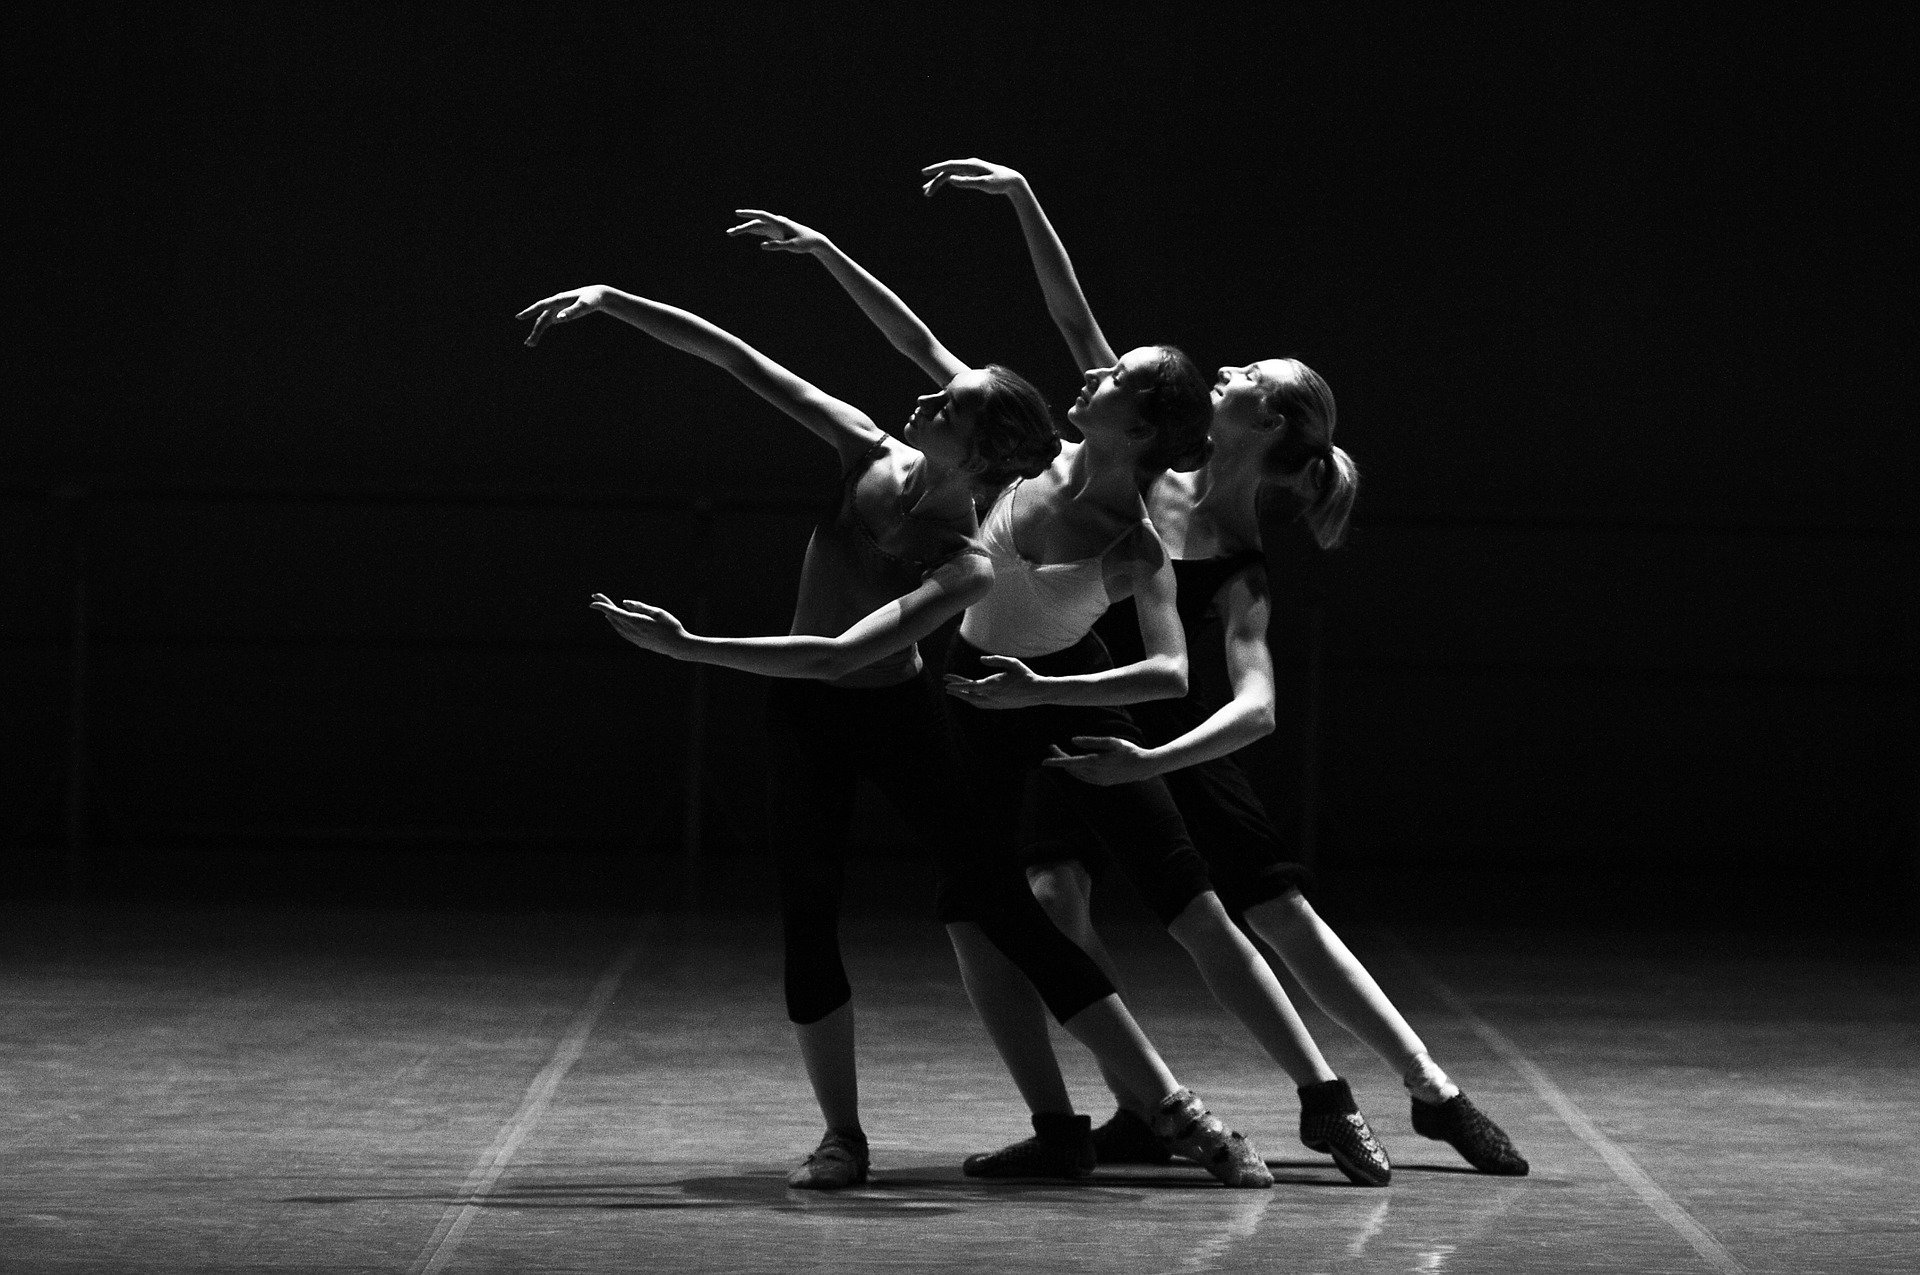 black and white image of three women in dance pose